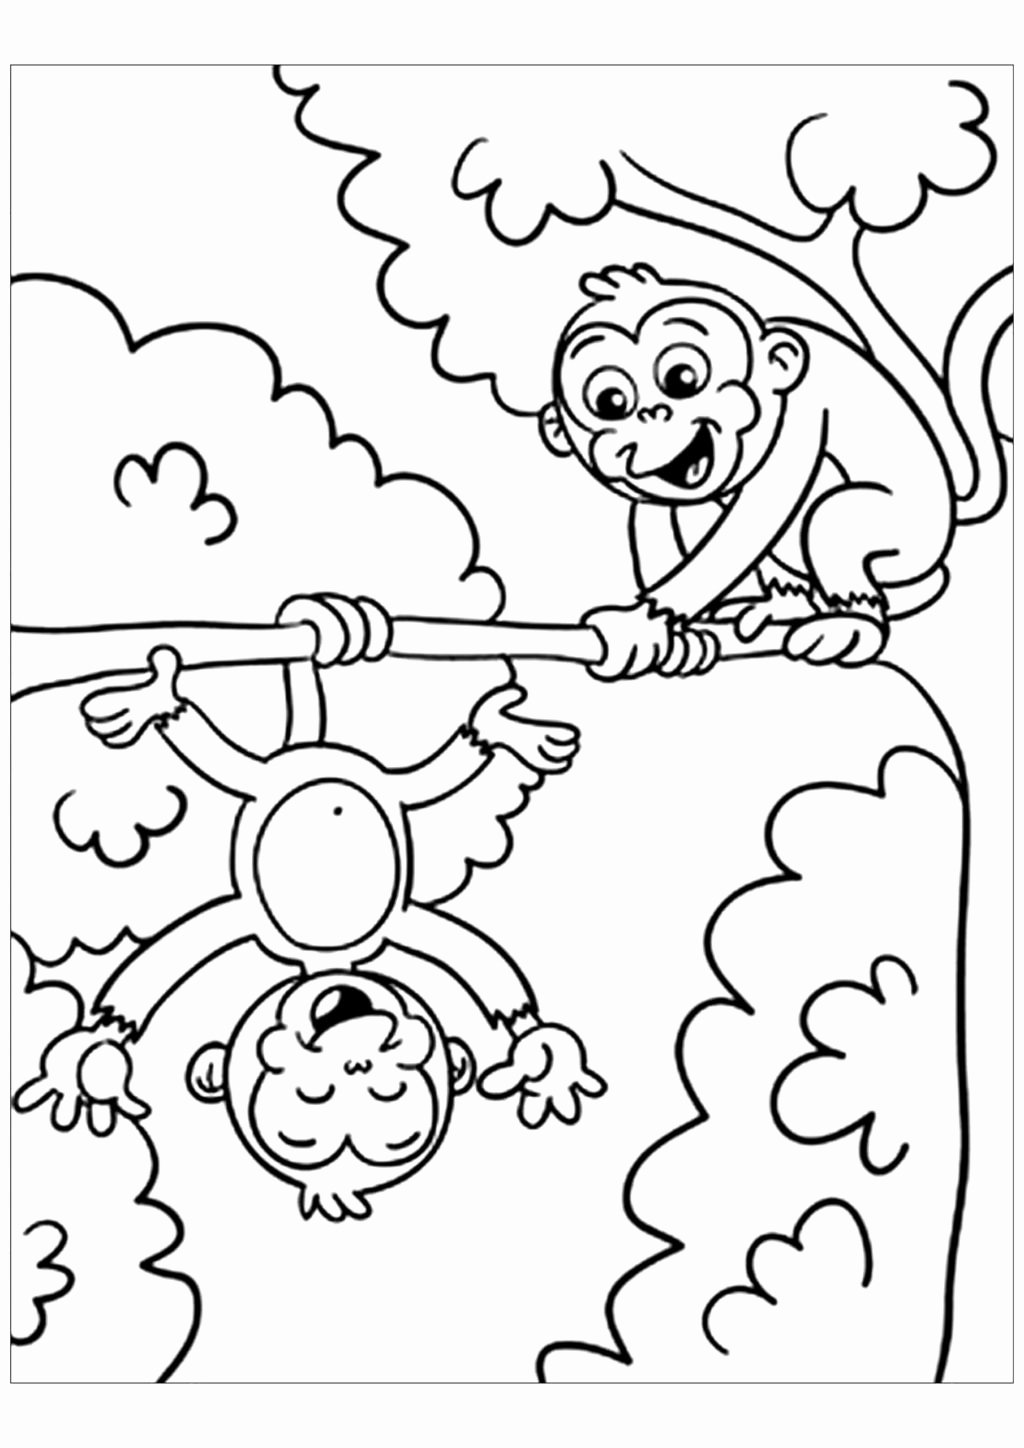 Monkey Worksheets for Preschoolers Inspirational Worksheet Coloring Book Best Monkeys to Print for Free